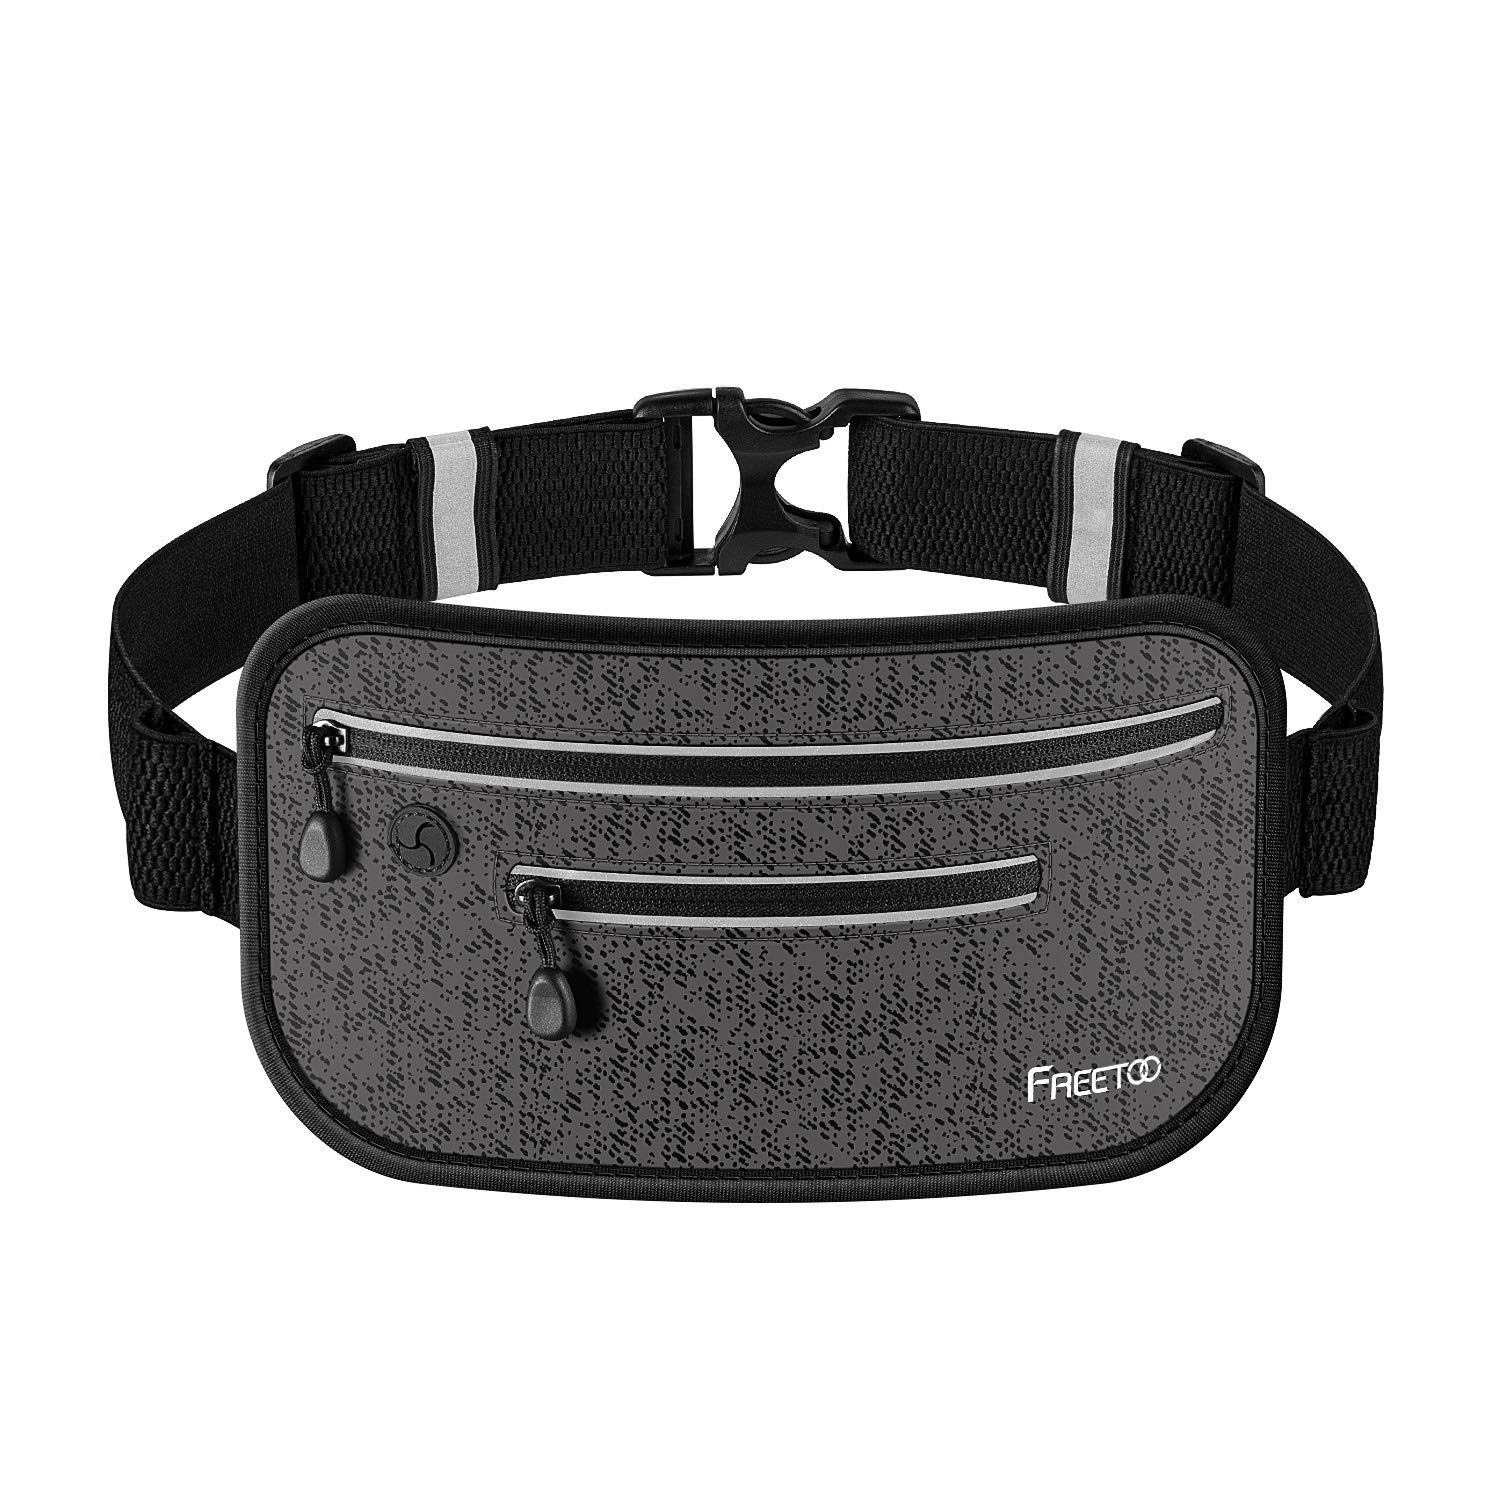 FREETOO Running Belt, Running Waist Pack,Bounce Free,Pretty-Portable,Ultra-Thin and Next-to-Skin,Layered Pockets,Water-Proof,Sweat-Proof,Suitable for Cellphone Below 6 Inches